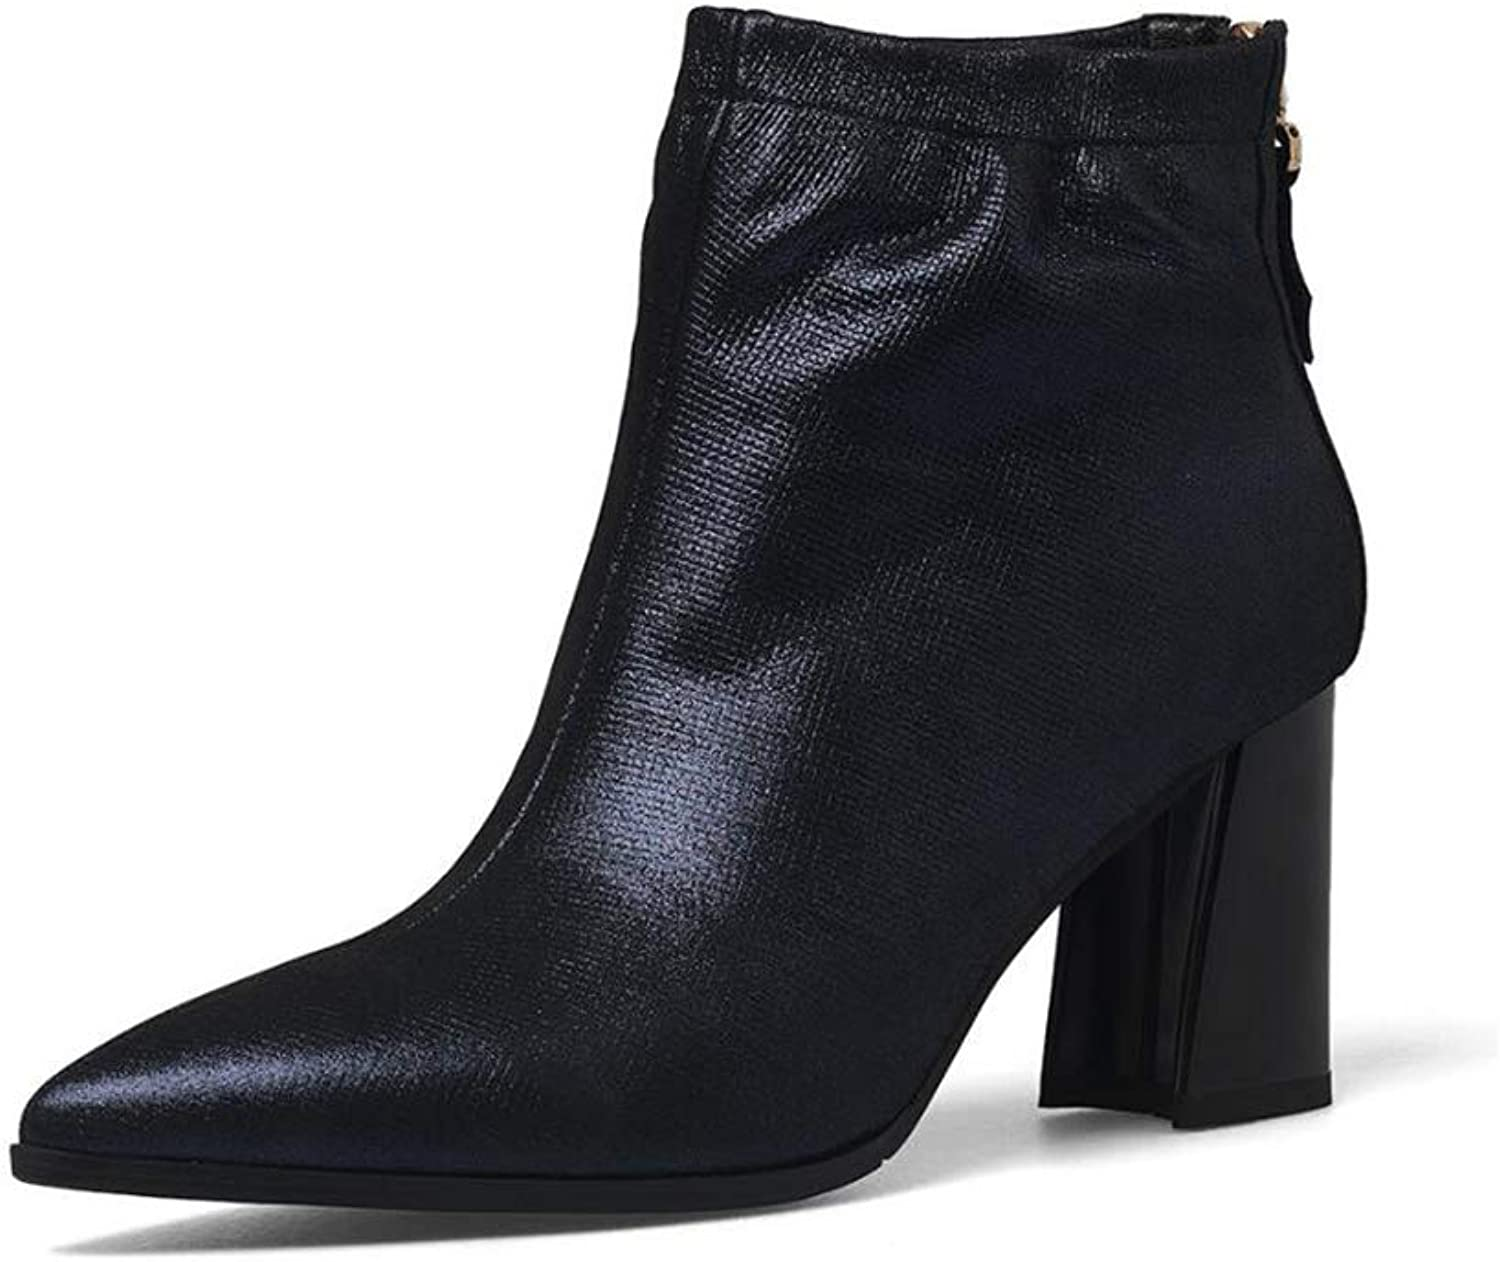 Women's Booties, Autumn Winter Leather Booties, Ladies' Boots, Pointed Thick Heel Boots, Korean Academy Boots (color   Black, Size   41)